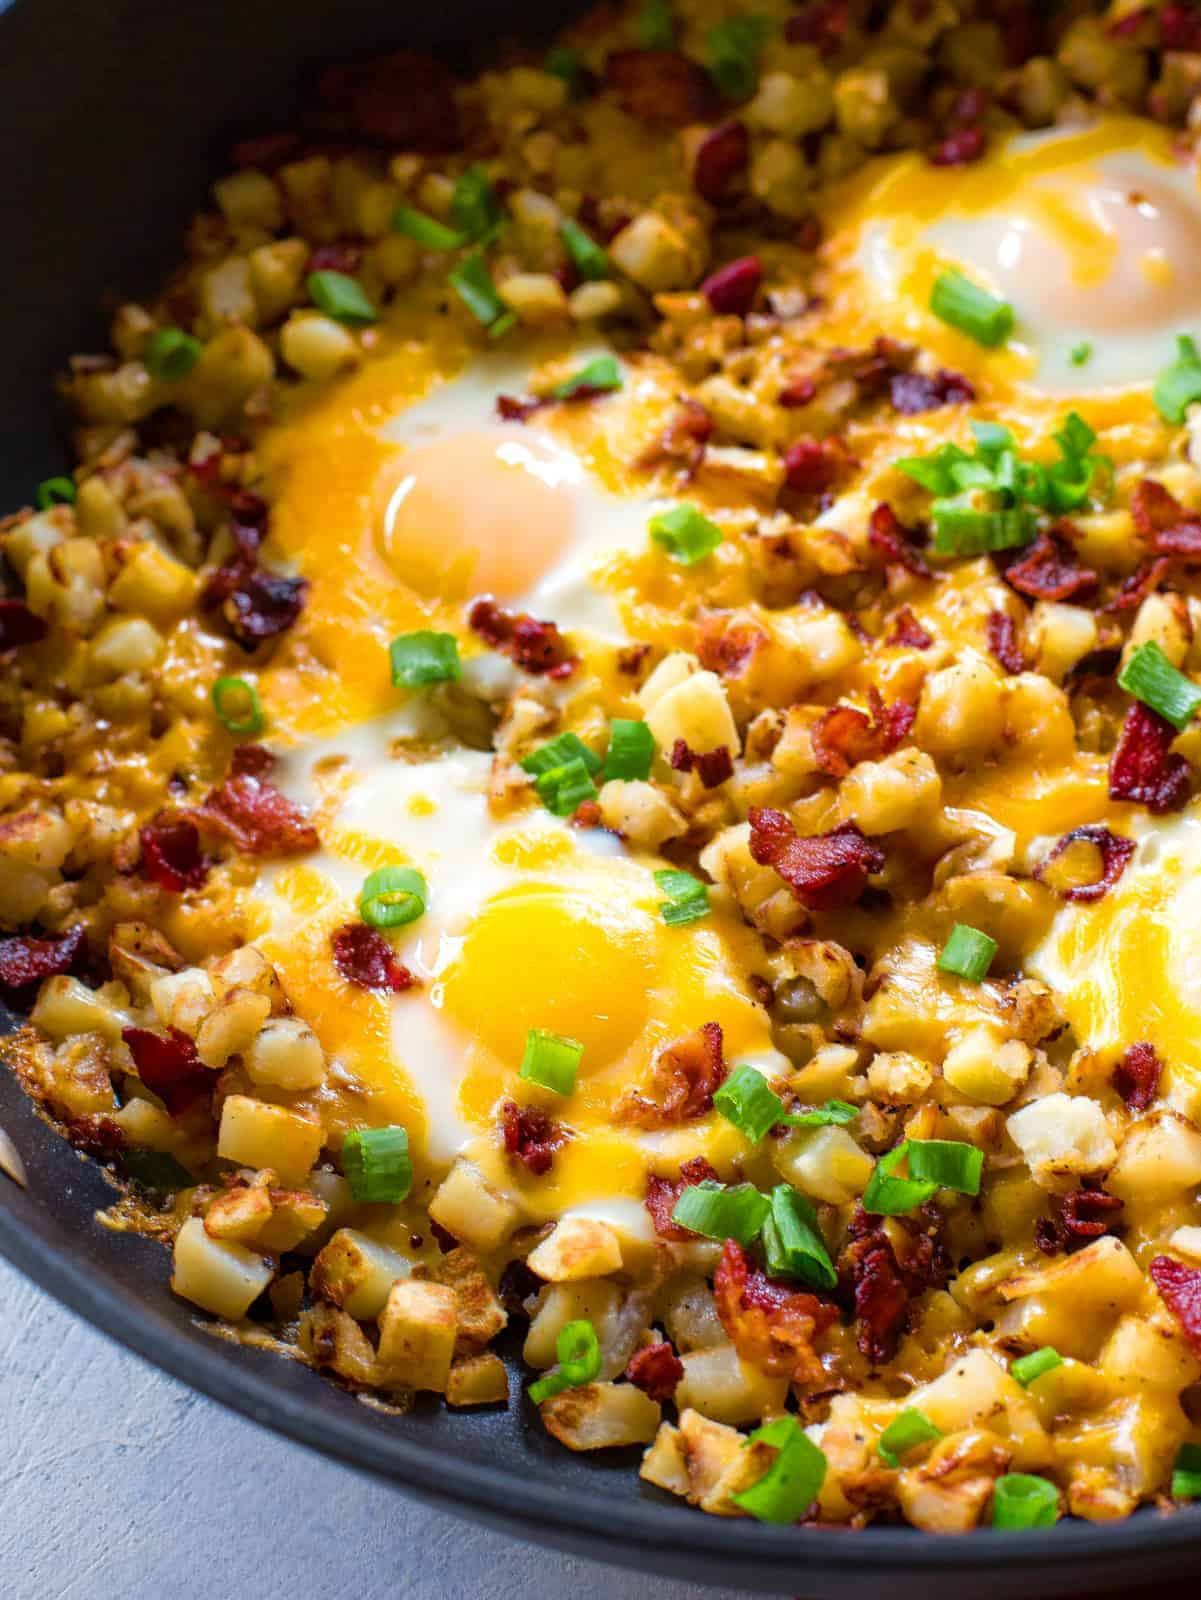 Bacon Egg And Potato Breakfast Skillet The Girl Who Ate